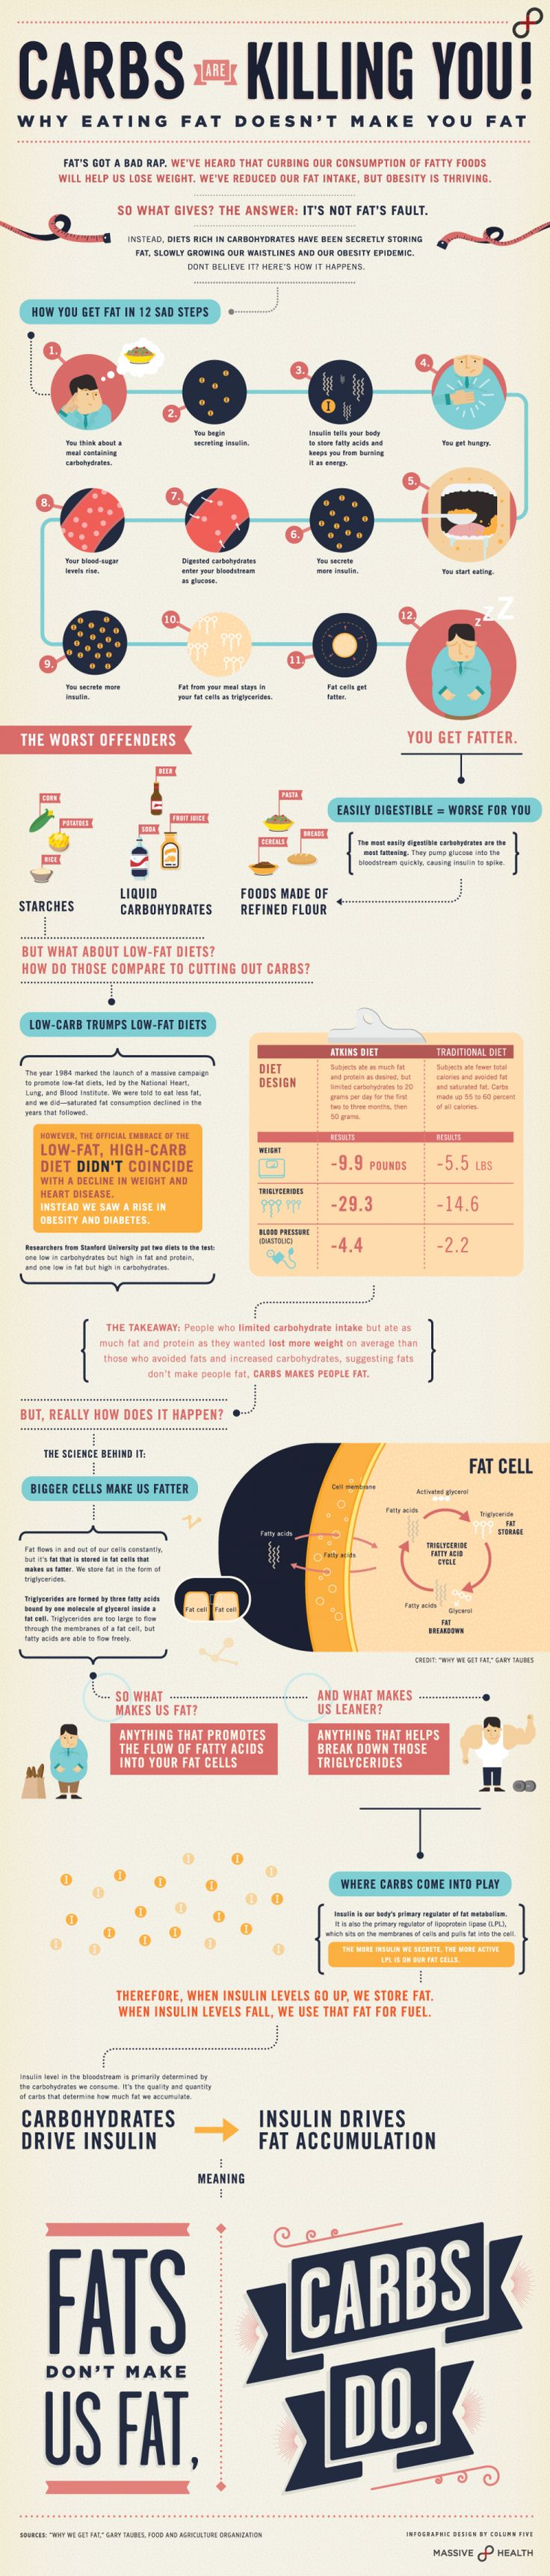 Fat Facts – Why Eating Fat Doesn't Make You Fat! Weight loss Guide Infographic #Personaltraining #Fitness #Exercise #Personal #training #Trainer #Weight-loss #Diet #Nutrition